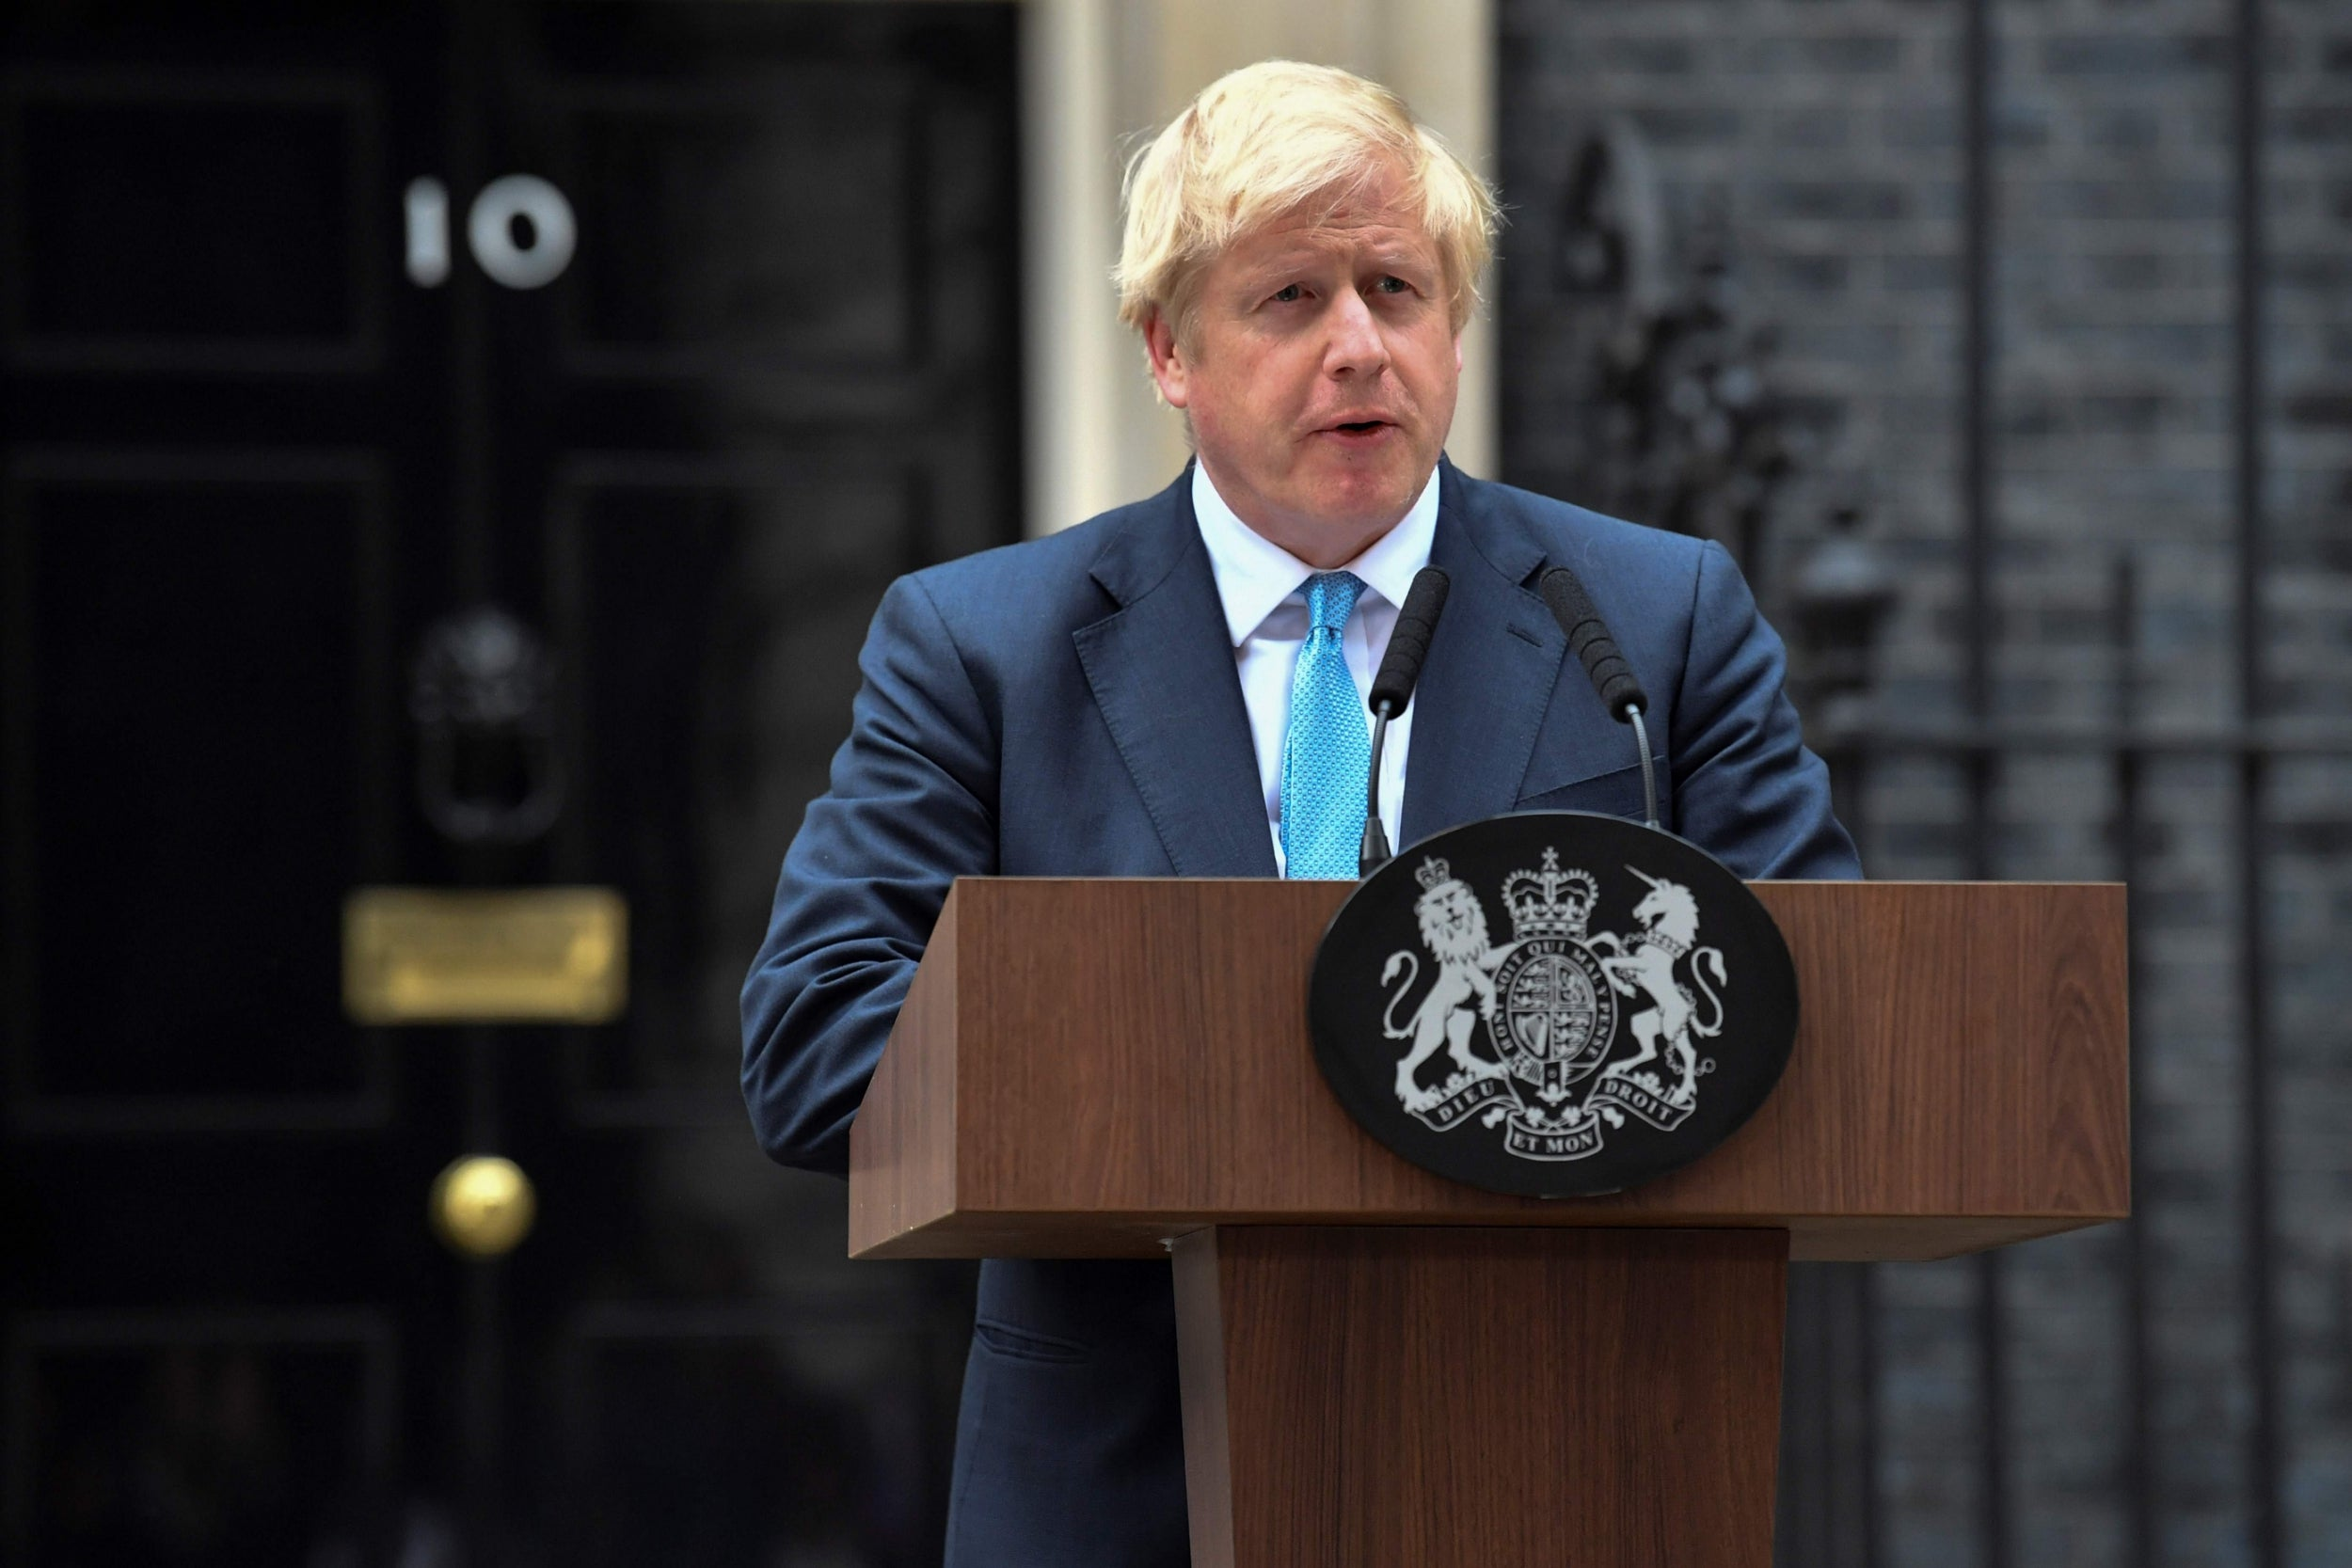 Boris Johnson is a man with nothing to offer and no idea what to do. And so his words outside No 10 were entirely meaningless